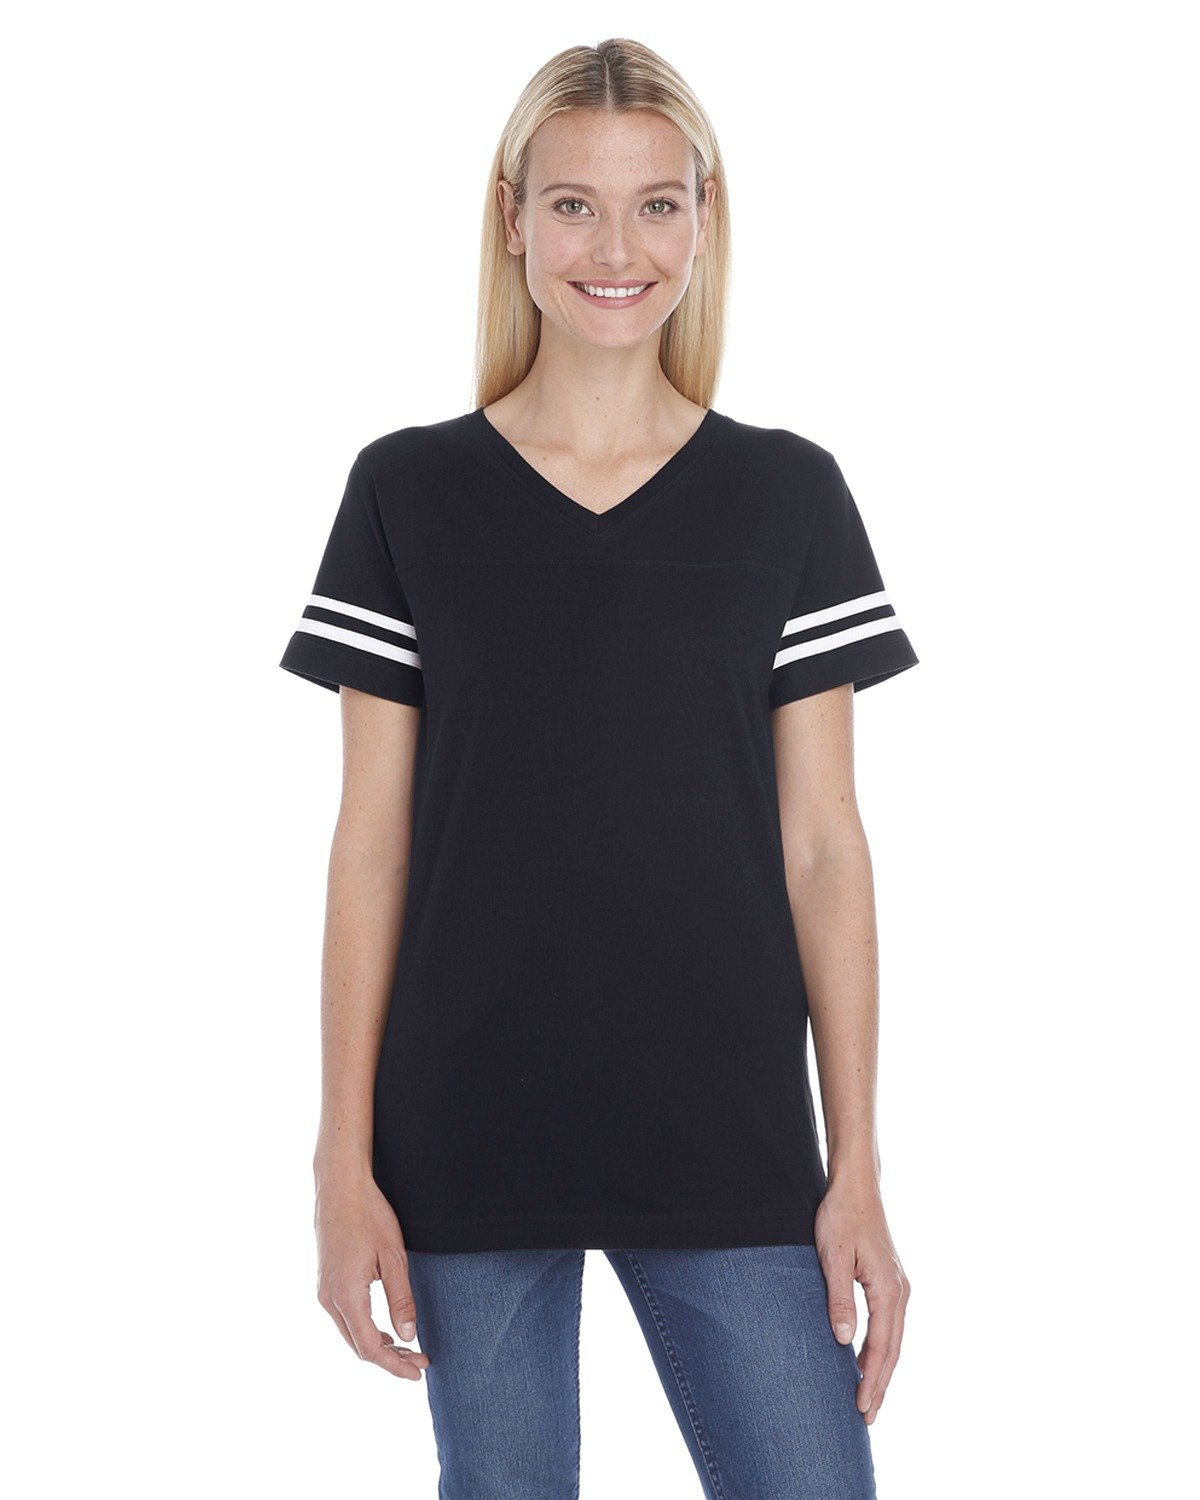 LAT Ladies' Football T-Shirt BLACK/ WHITE